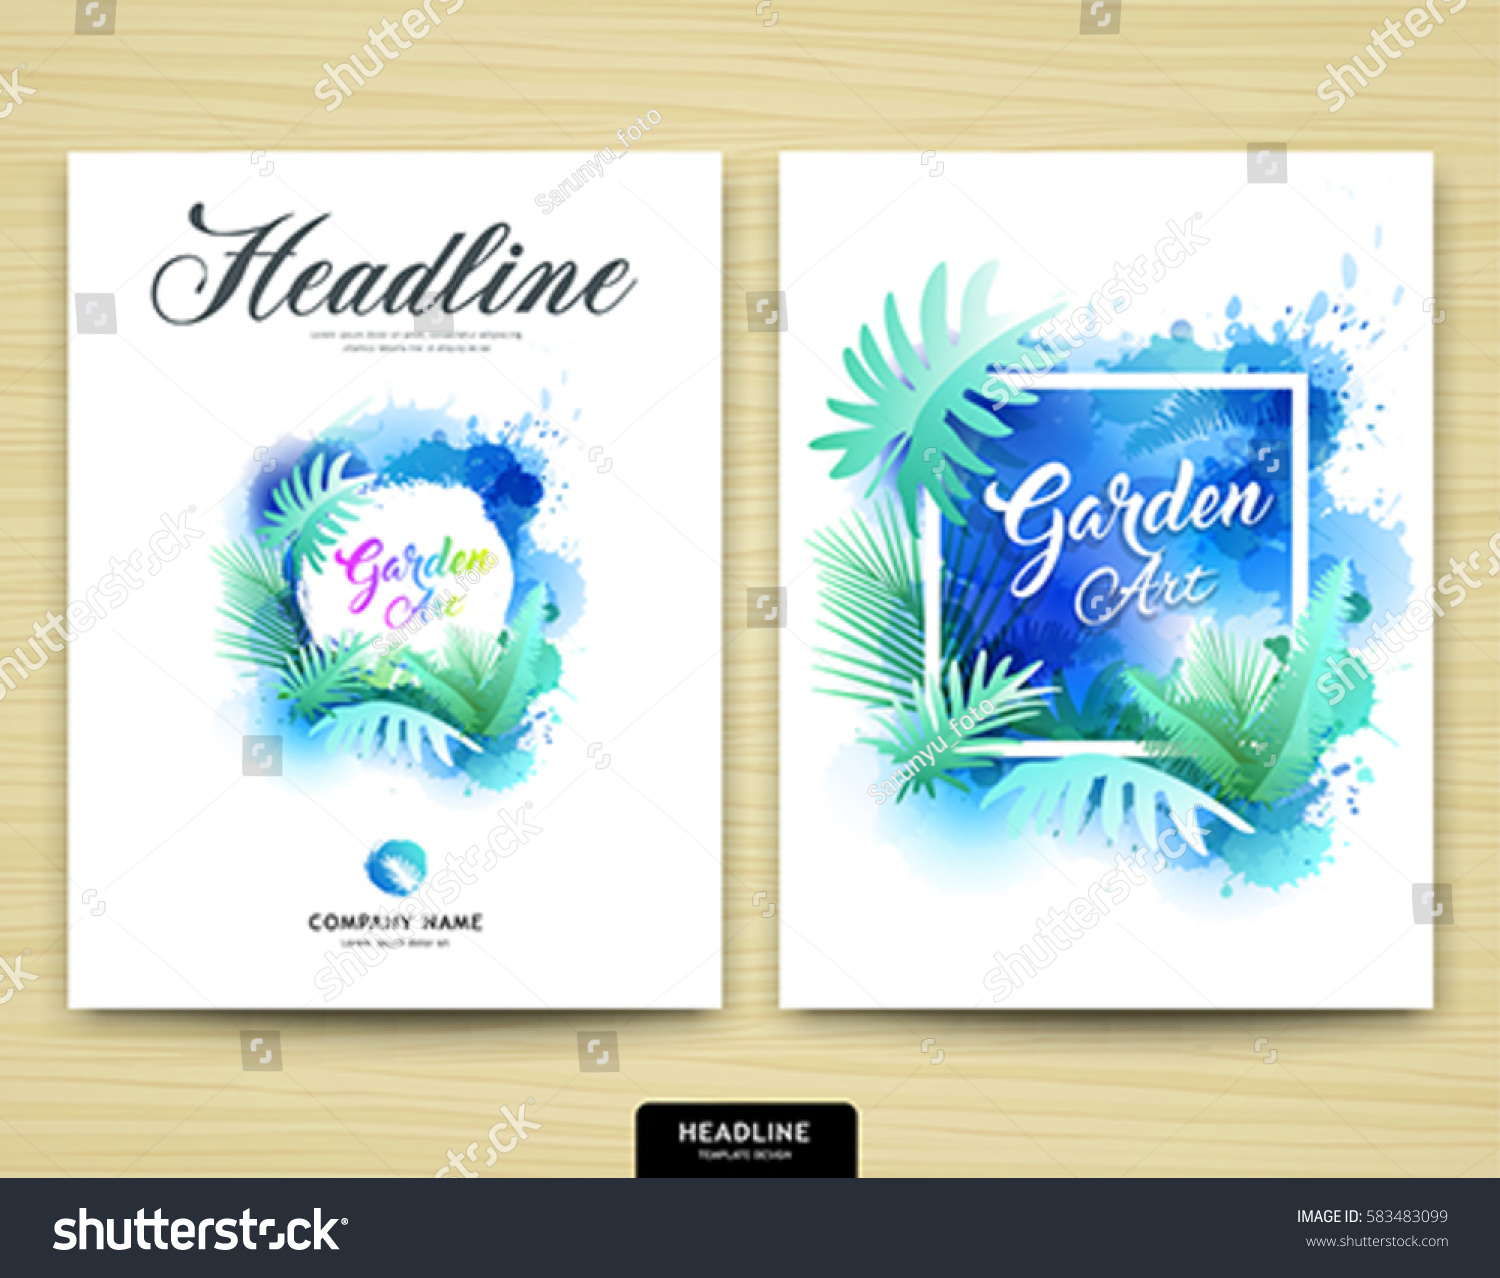 cover annual report garden design leaf tree nature water color style brochure template layout